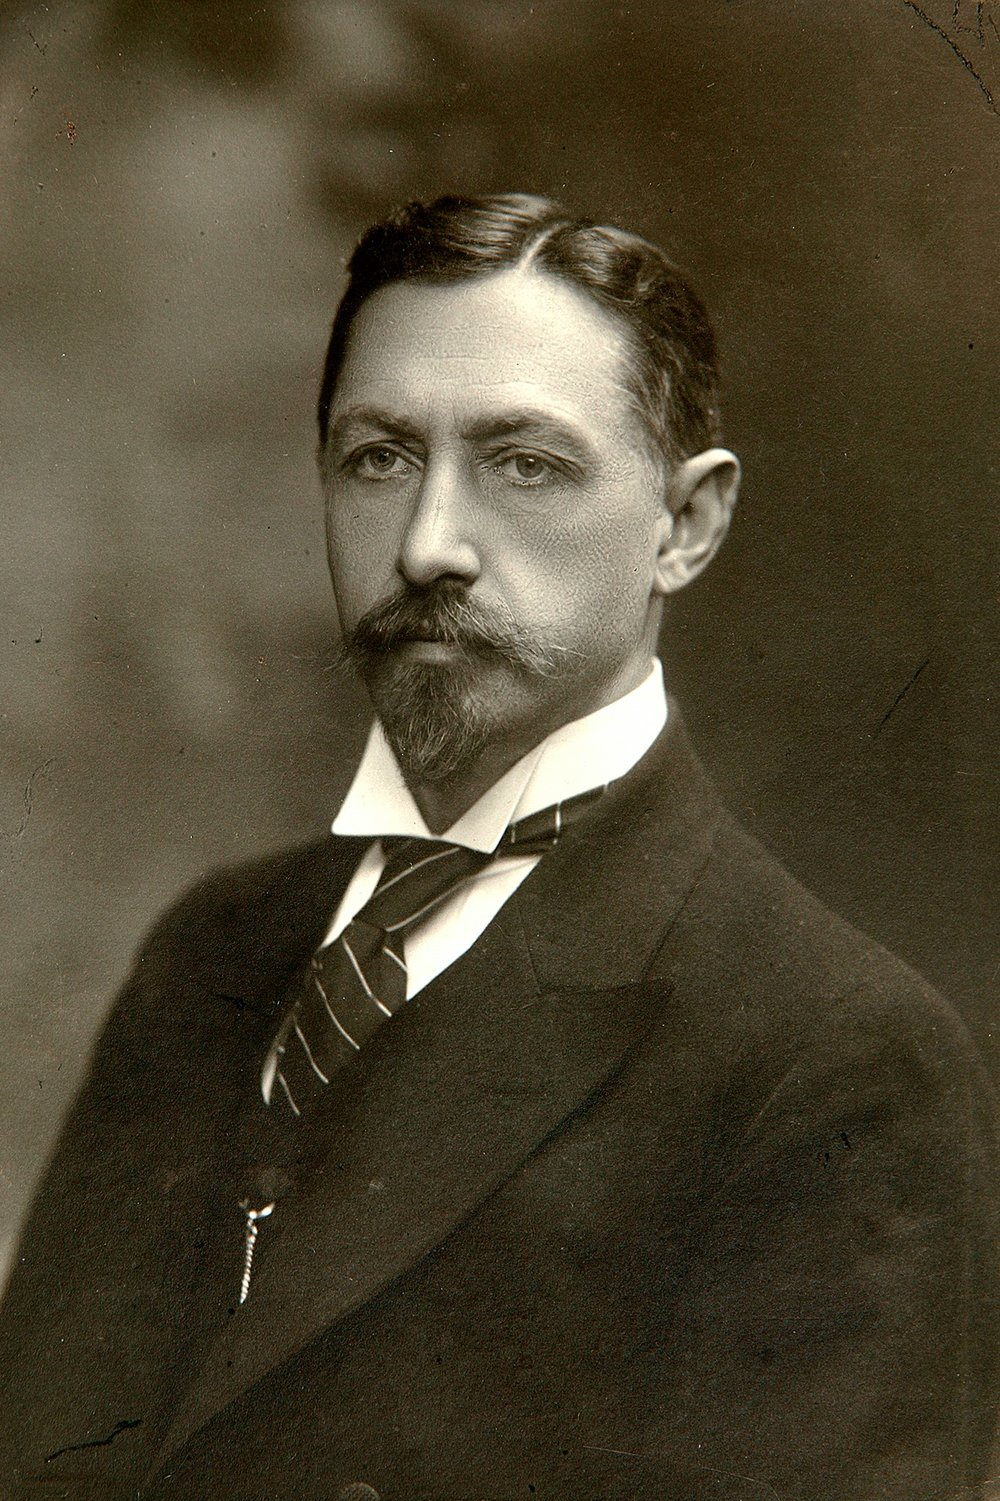 Poet and writer, Ivan Bunin